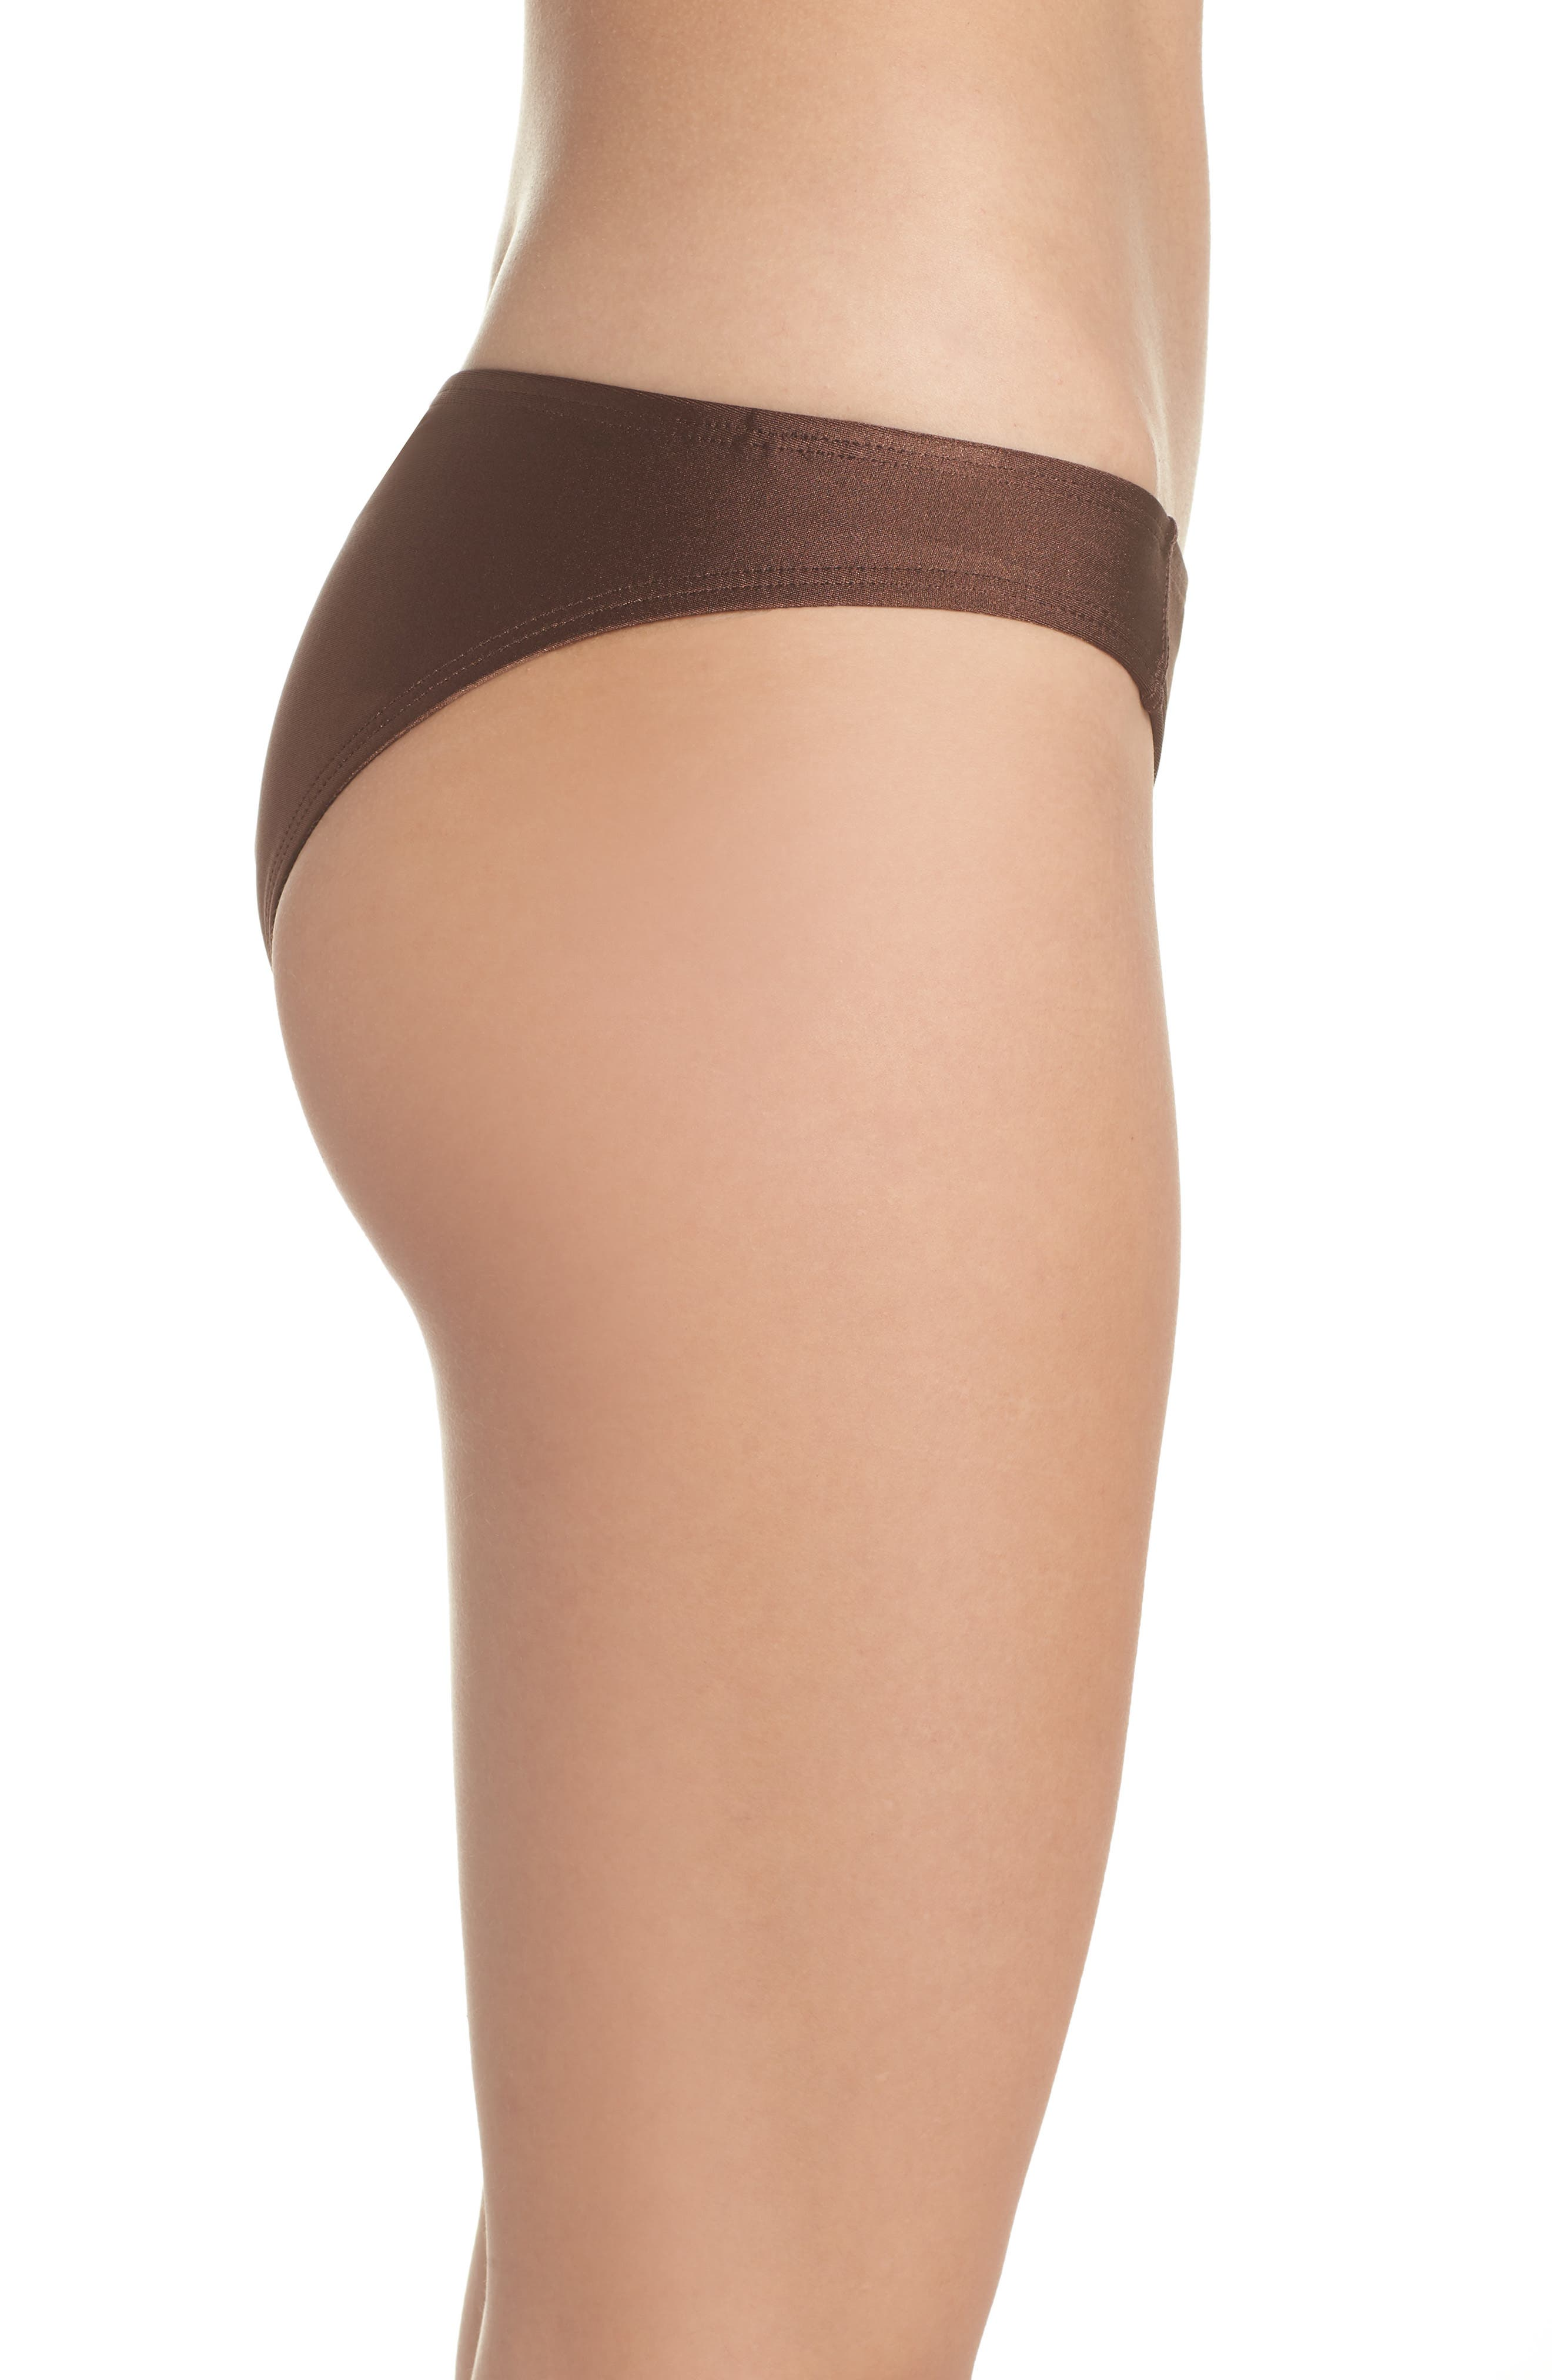 Banded Hipster Bikini Bottoms,                             Alternate thumbnail 3, color,                             Chocolate Glint